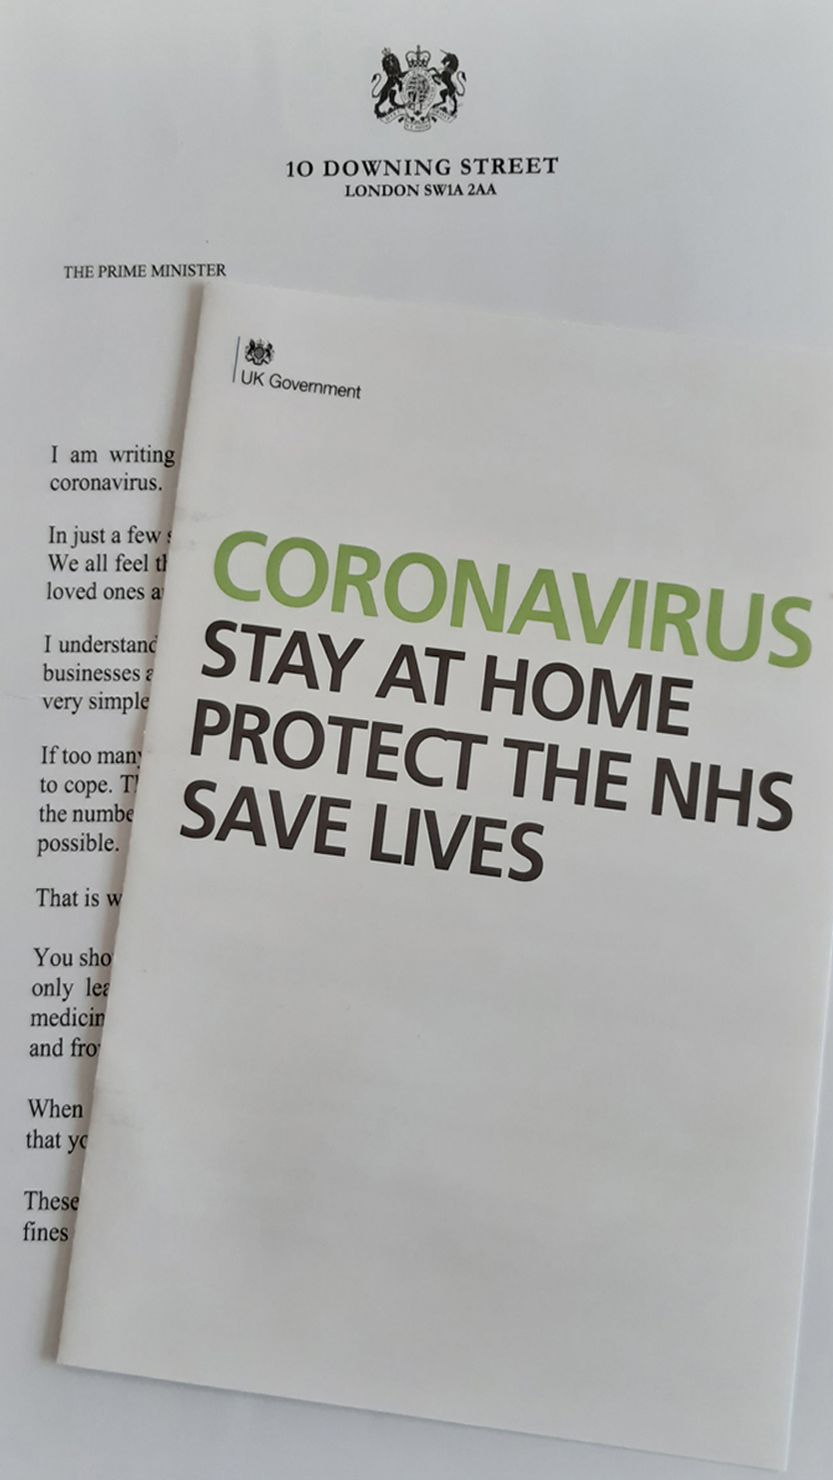 An image of the government-issued Coronavirus letter and leaflet